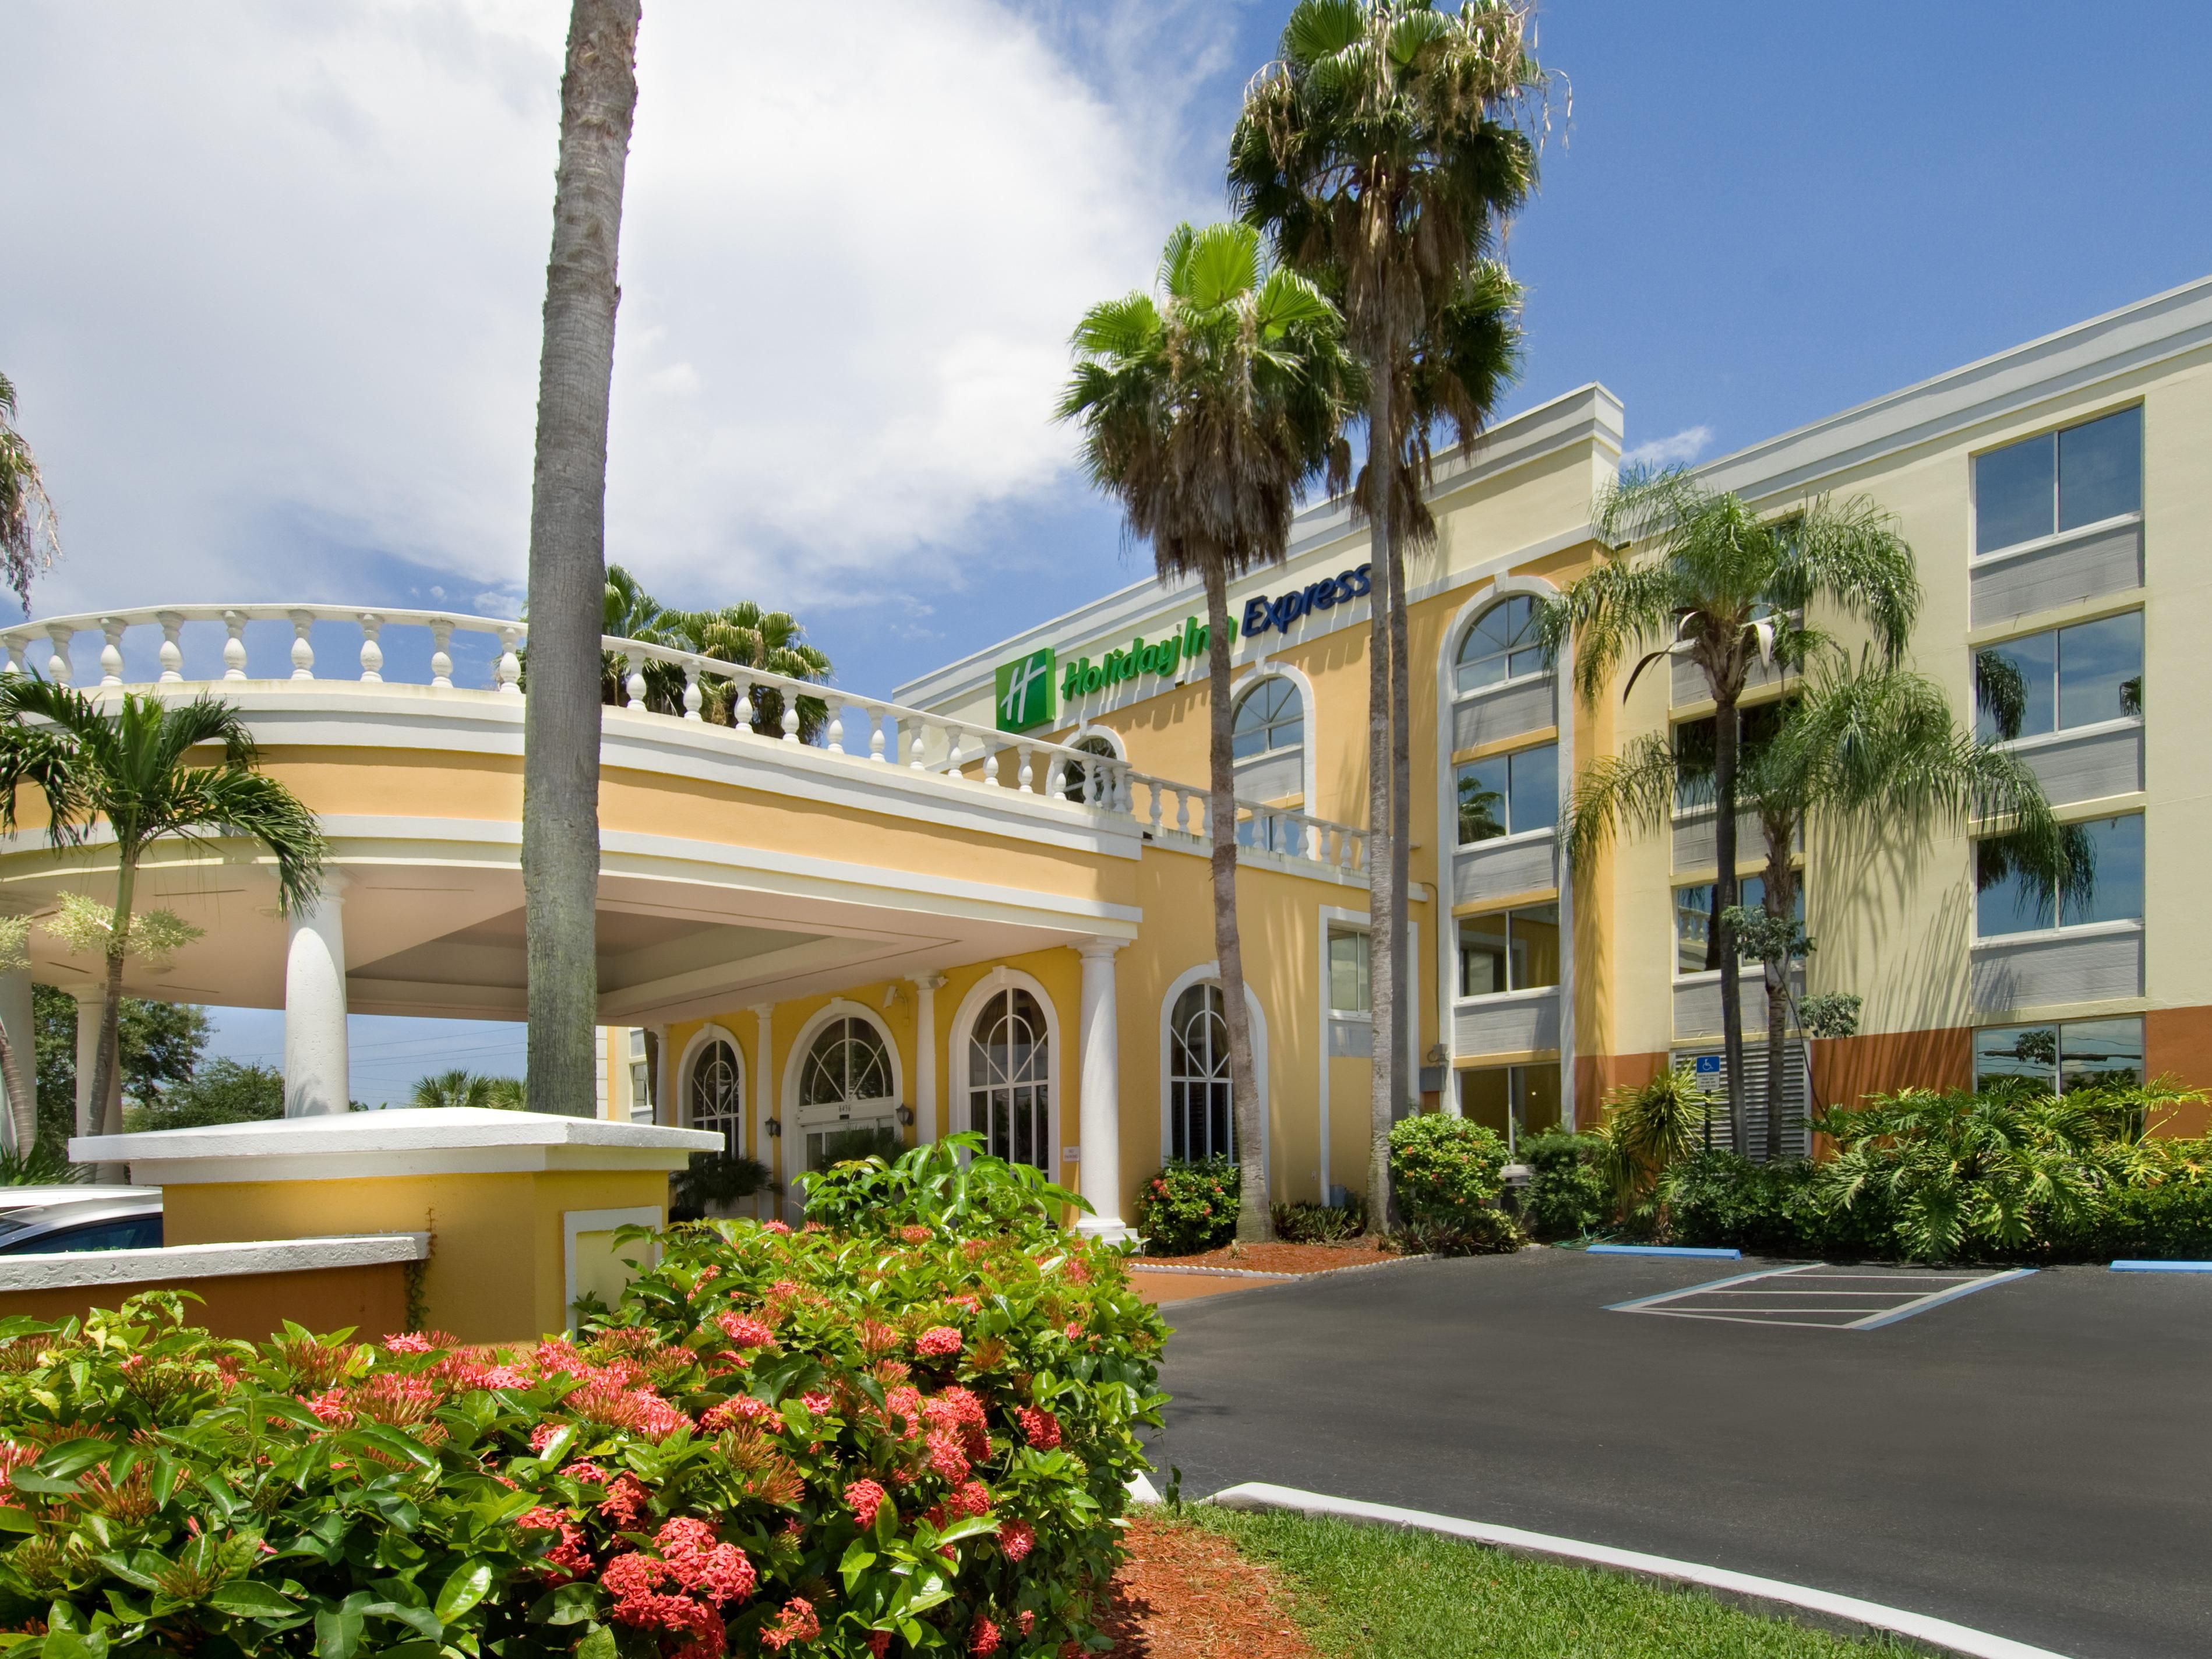 Holiday inn Express Miami Airport Doral Hotel Exterior